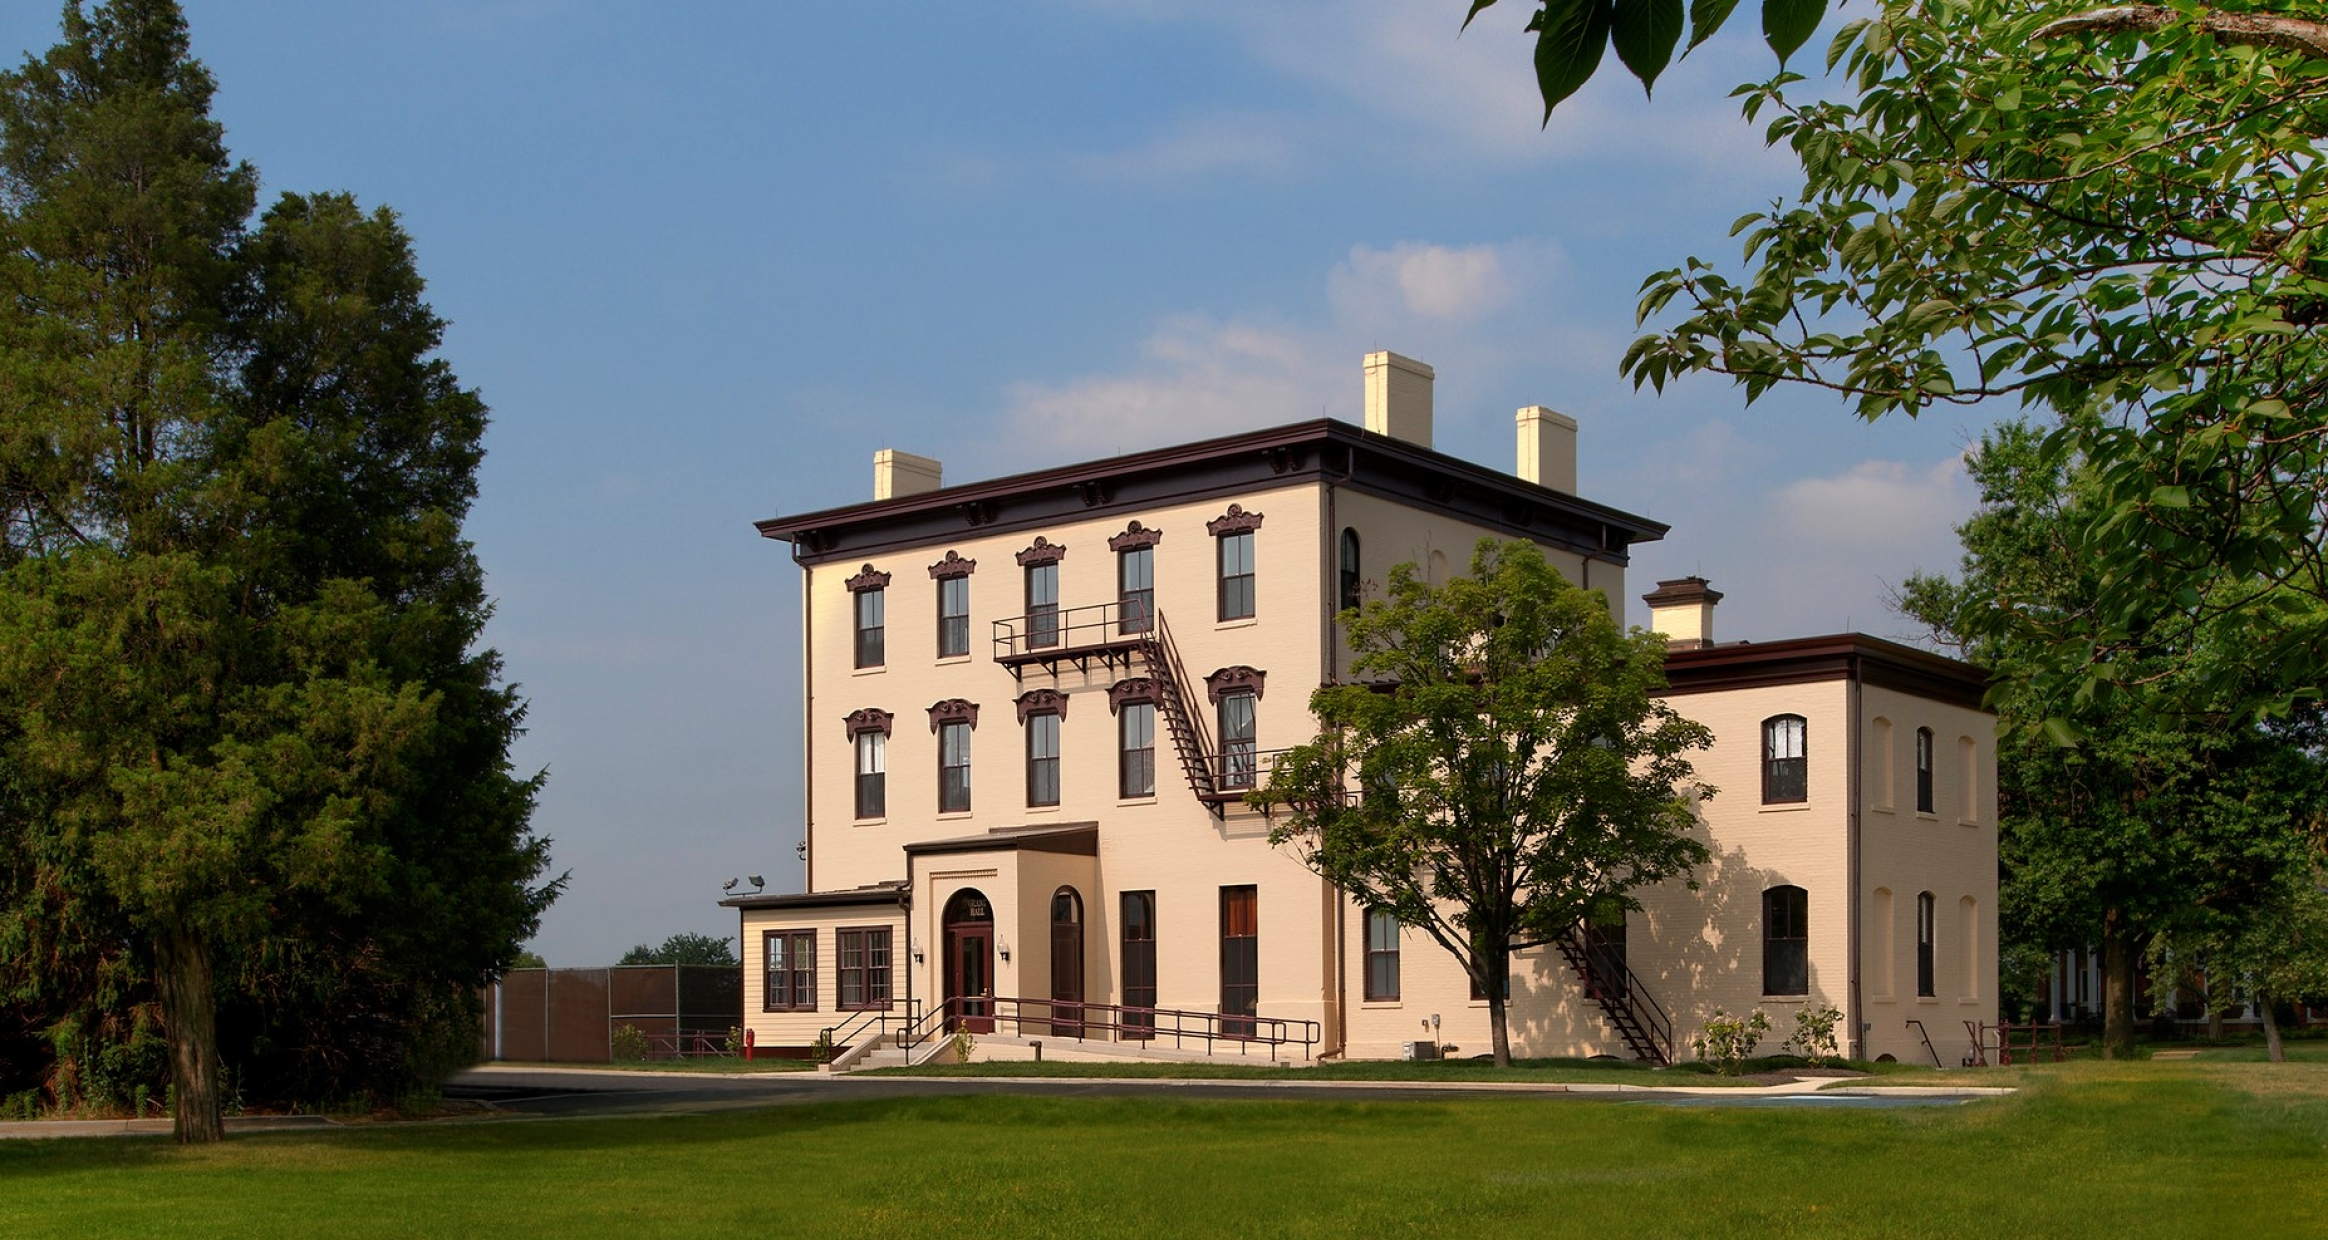 Exterior of Grant Hall at Fort McNair